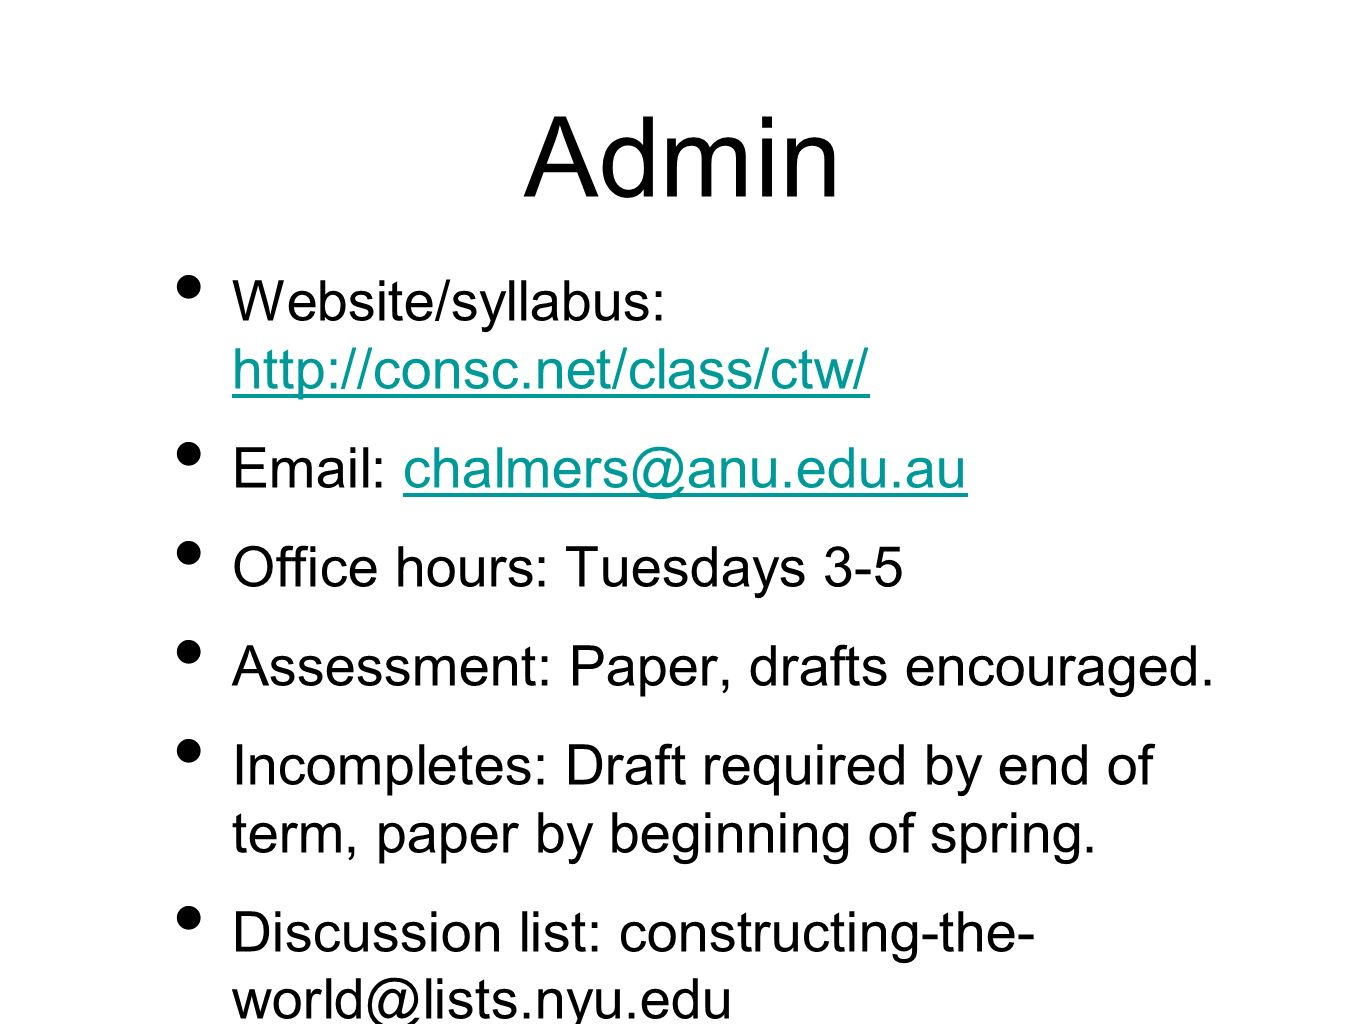 Admin Website/syllabus: http://consc.net/class/ctw/